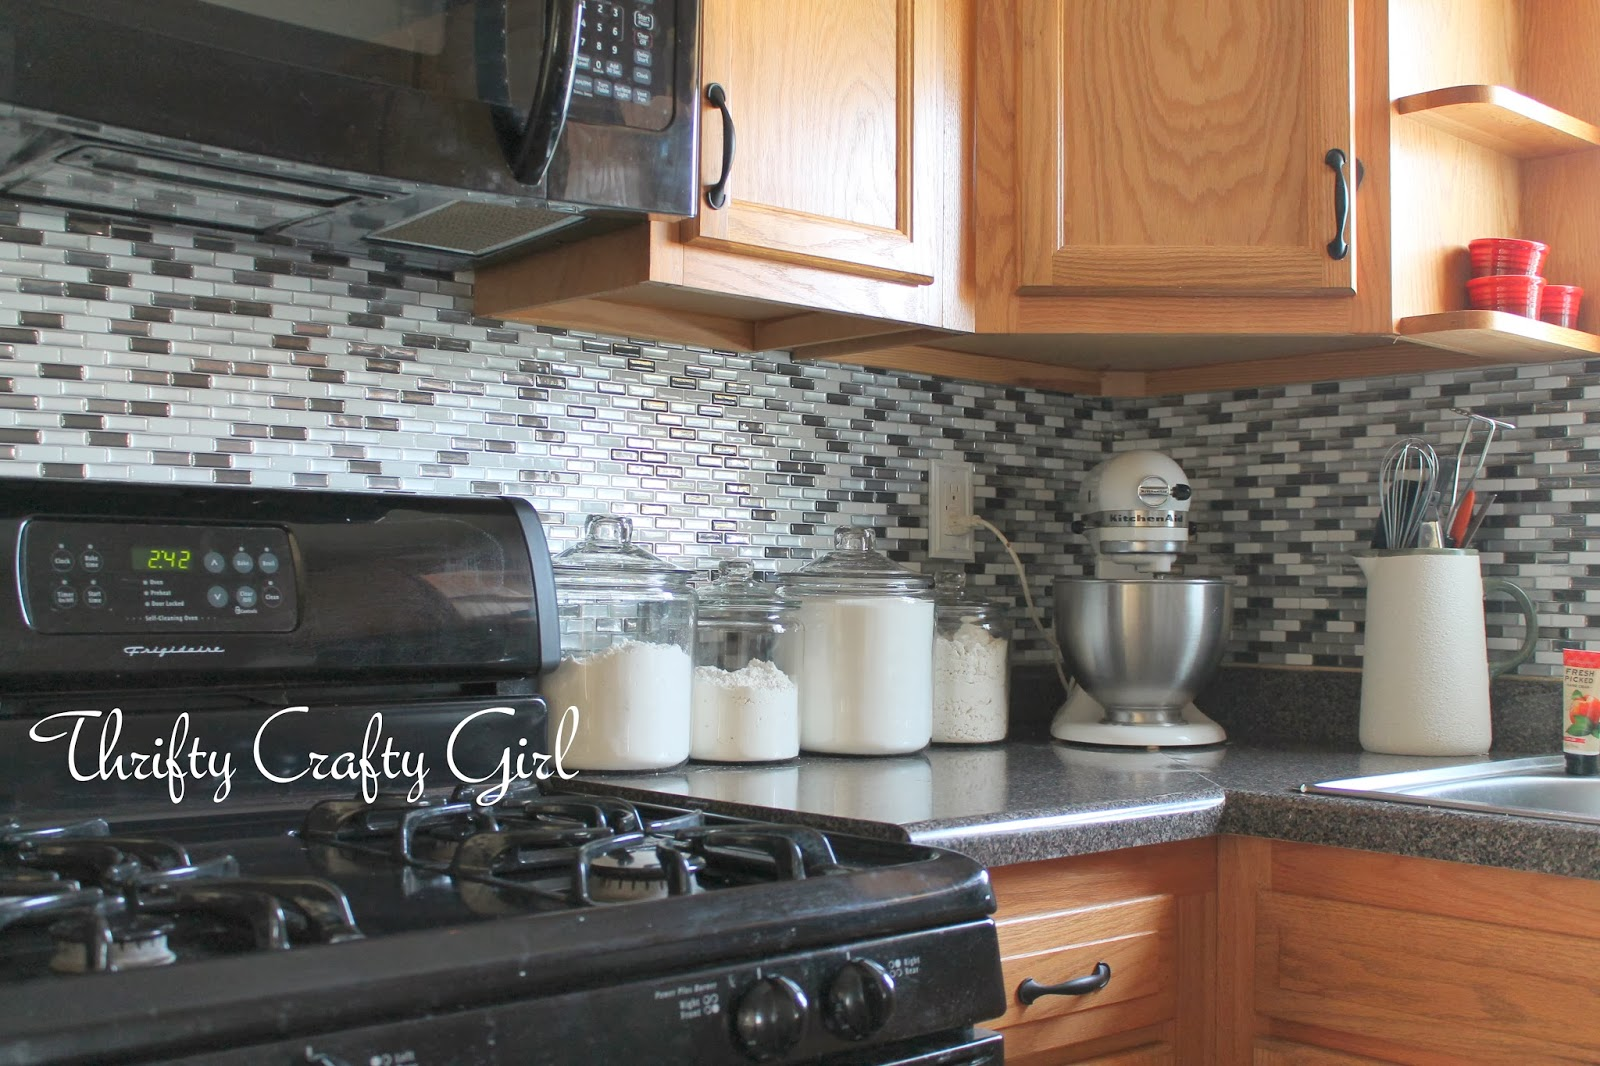 Thrifty crafty girl easy kitchen backsplash with smart tiles easy kitchen backsplash with smart tiles dailygadgetfo Image collections